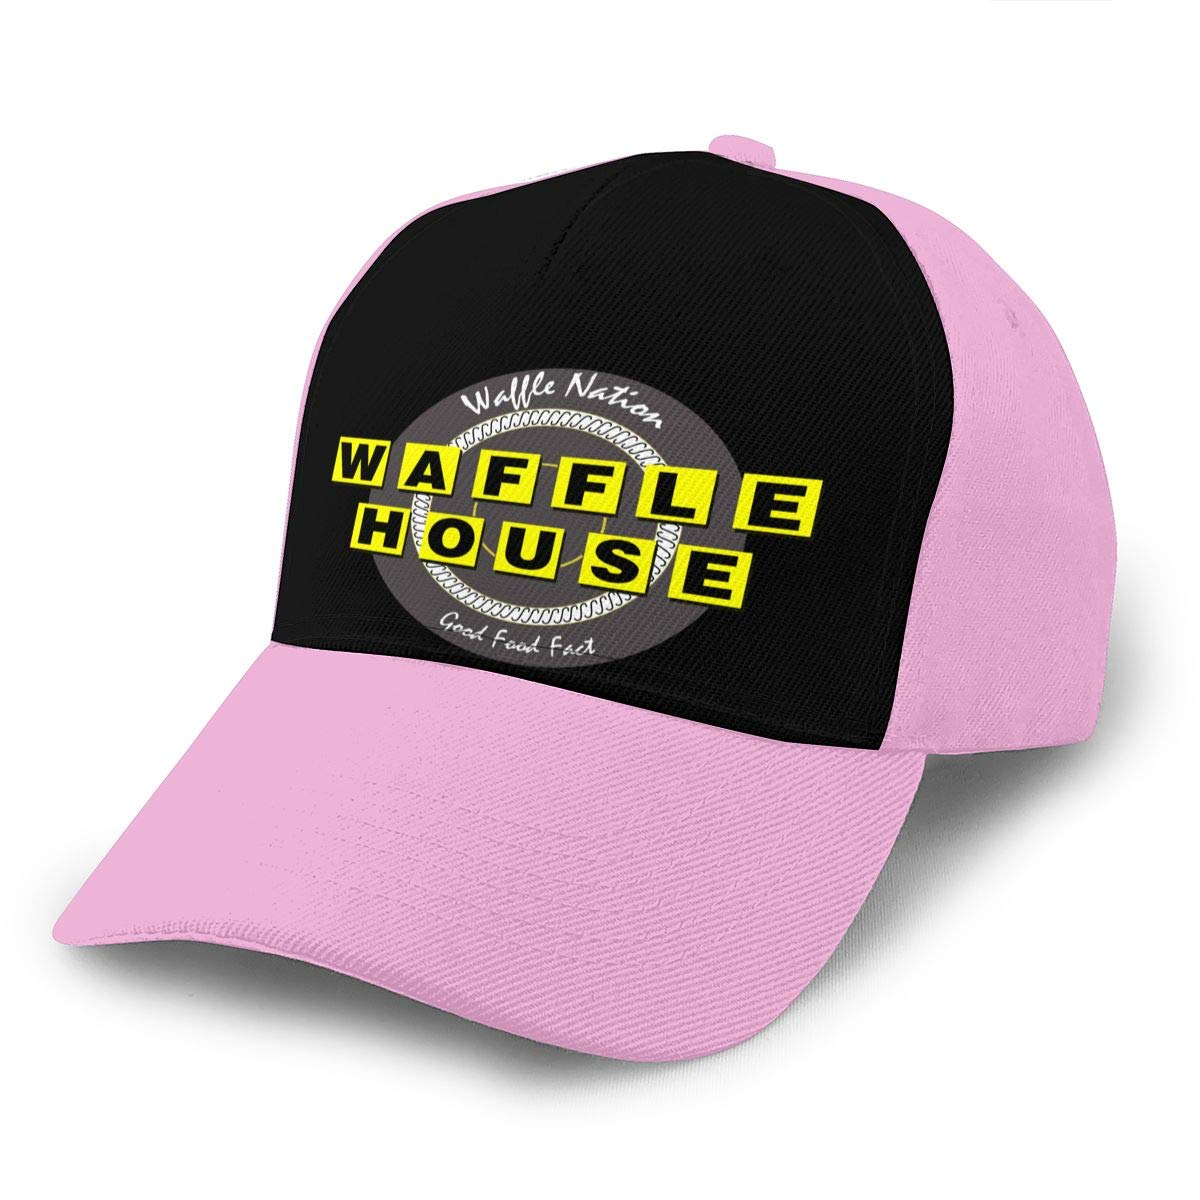 Adjustable Women Men Waffle-House Print Baseball Cap Flat Brim Cap Hats Hip Hop Snapback Sun Hat Boys Girls Pink by Apolonia